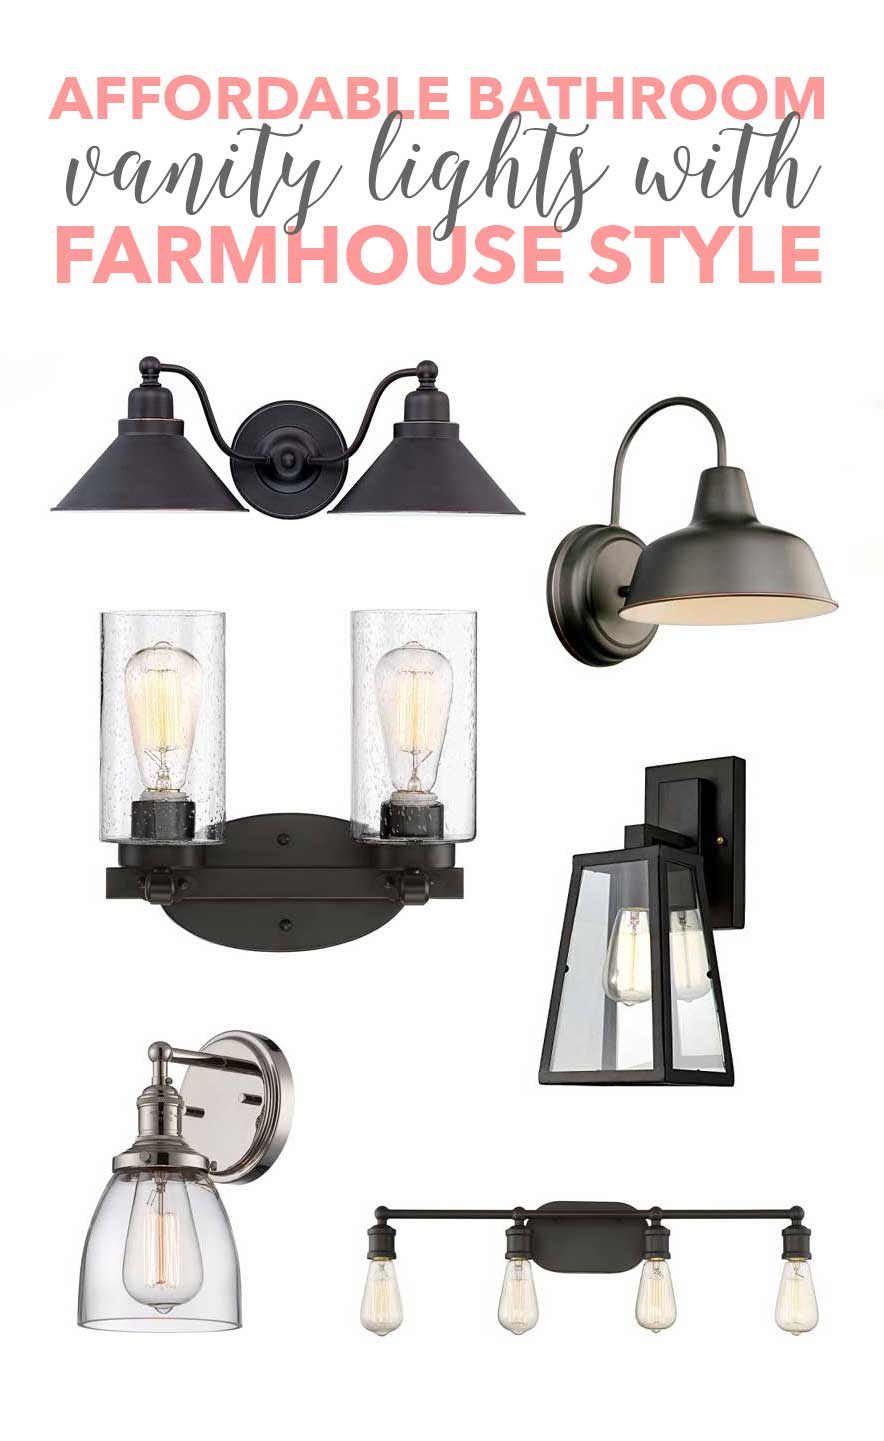 Affordable Bathroom Vanity Lights with Farmhouse Style!